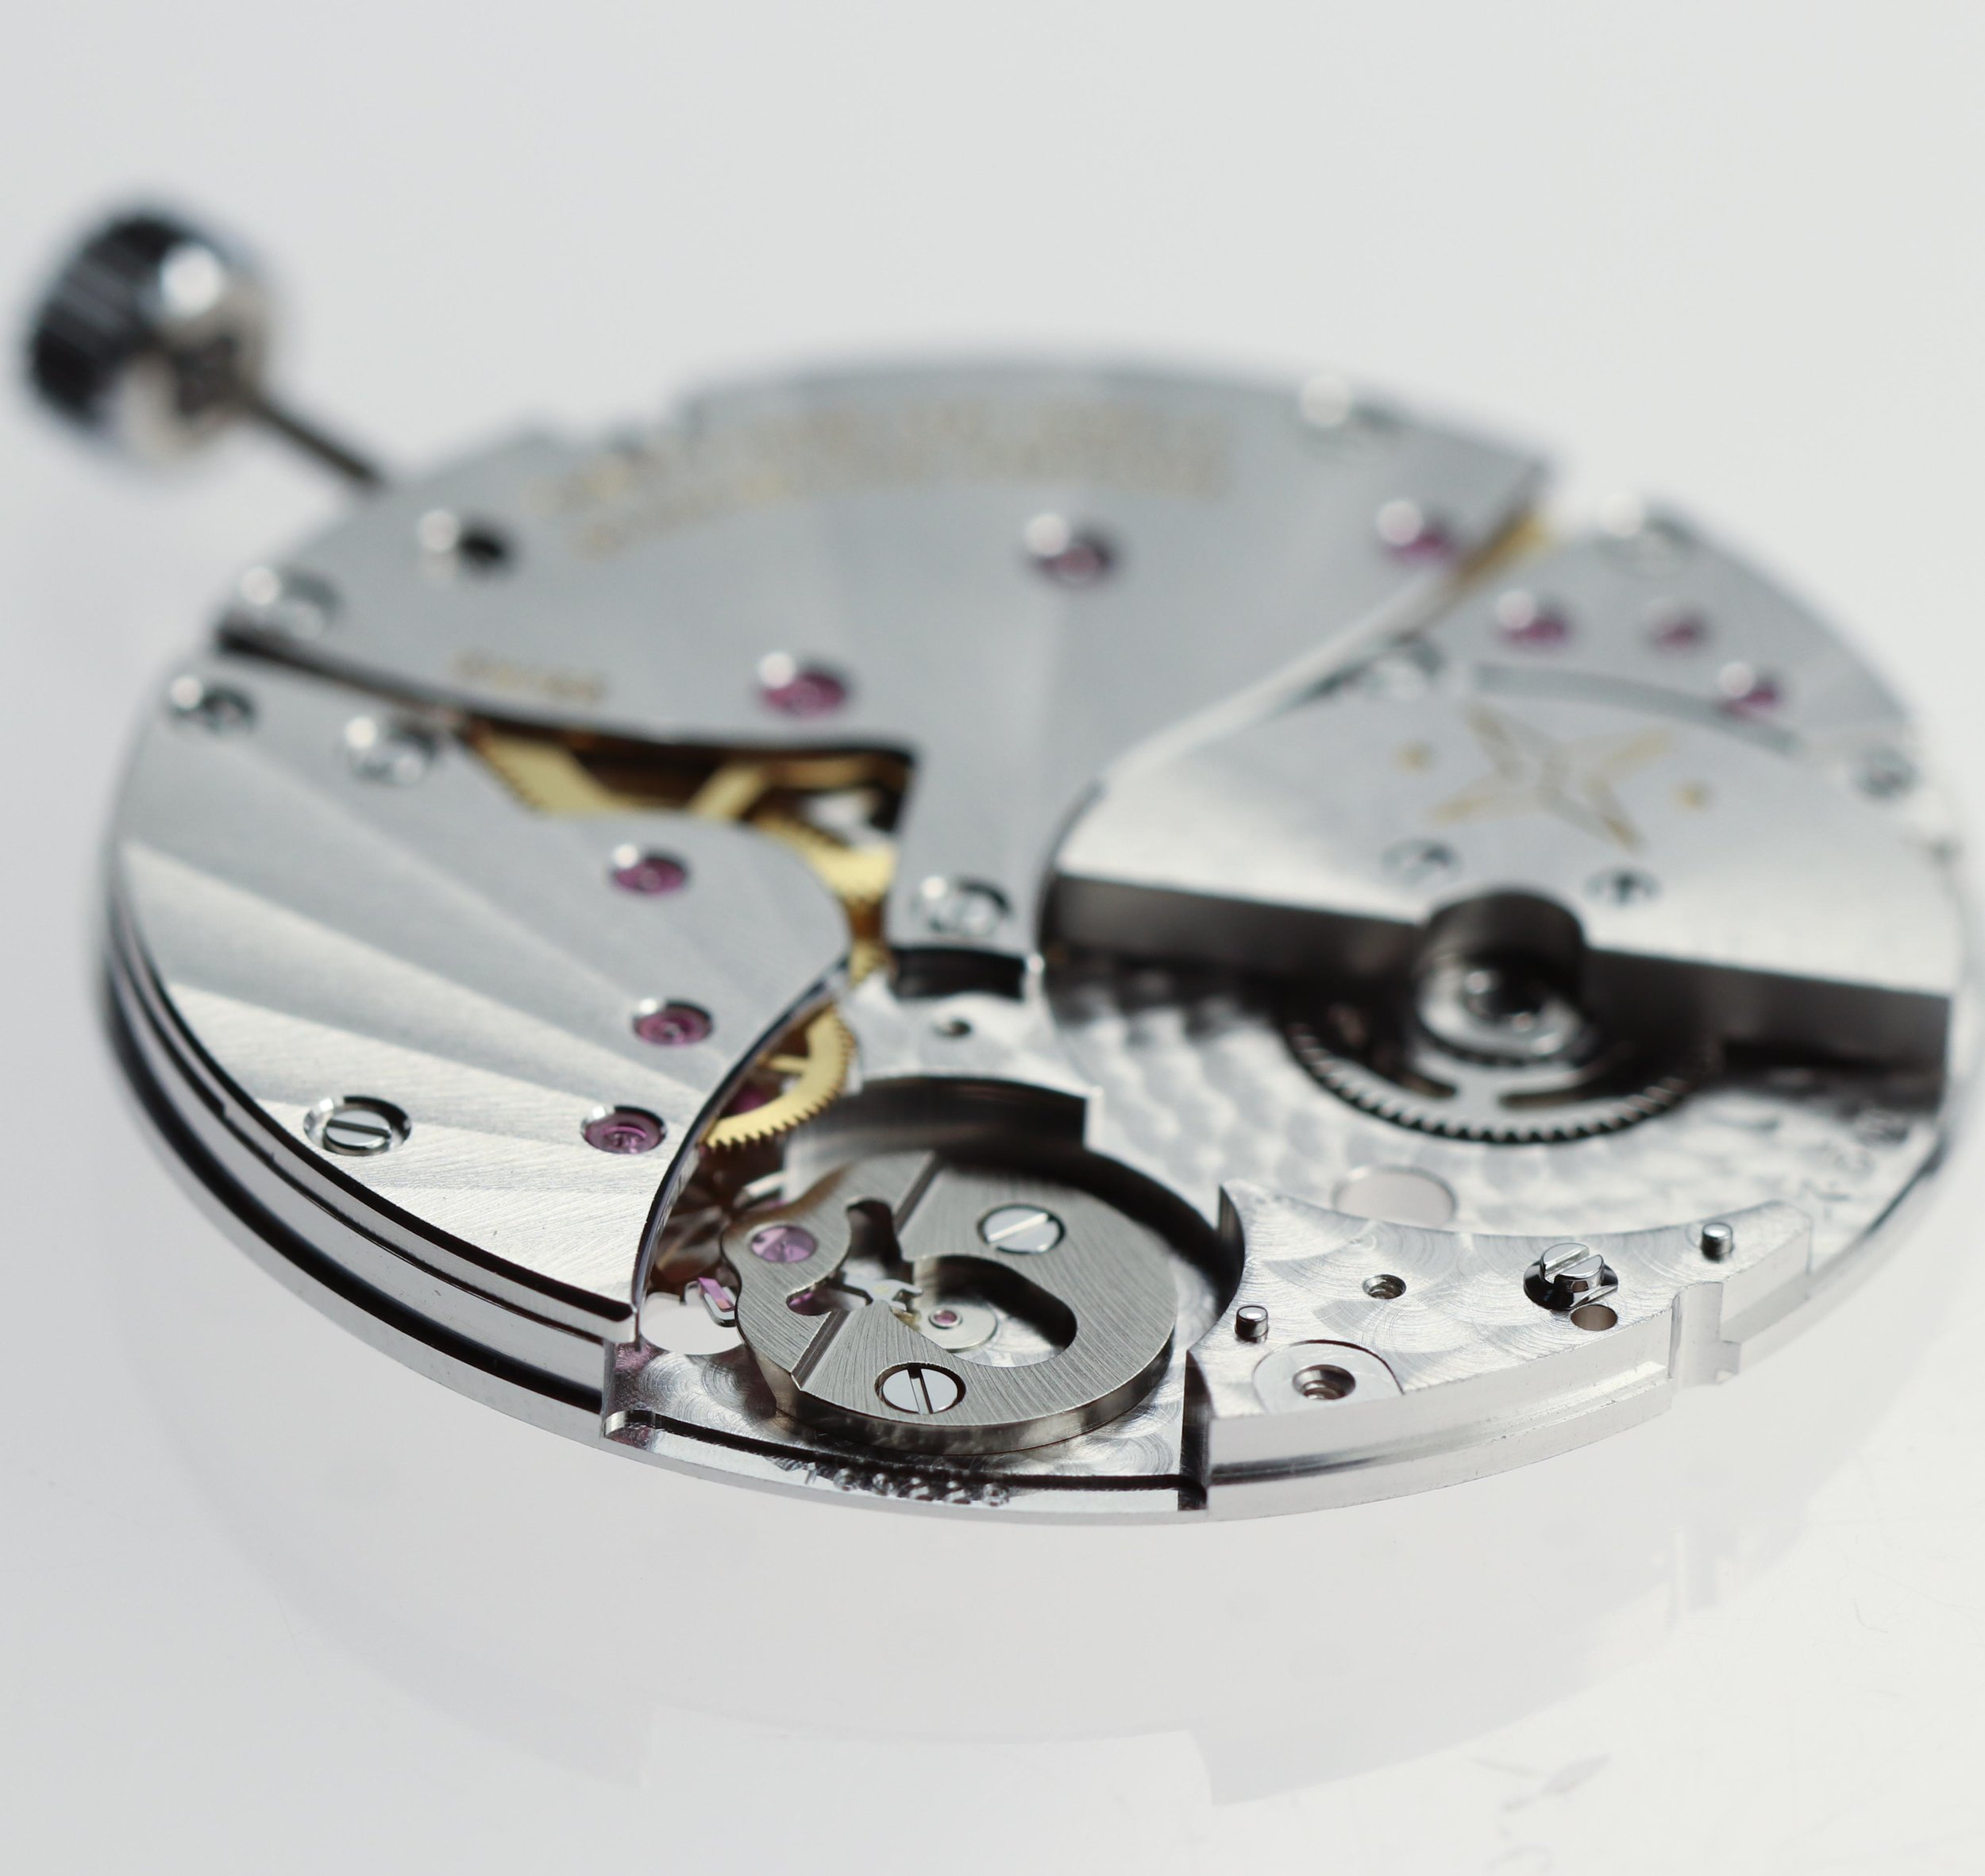 Profile view showing the volume of the micro-rotor compared to the movement